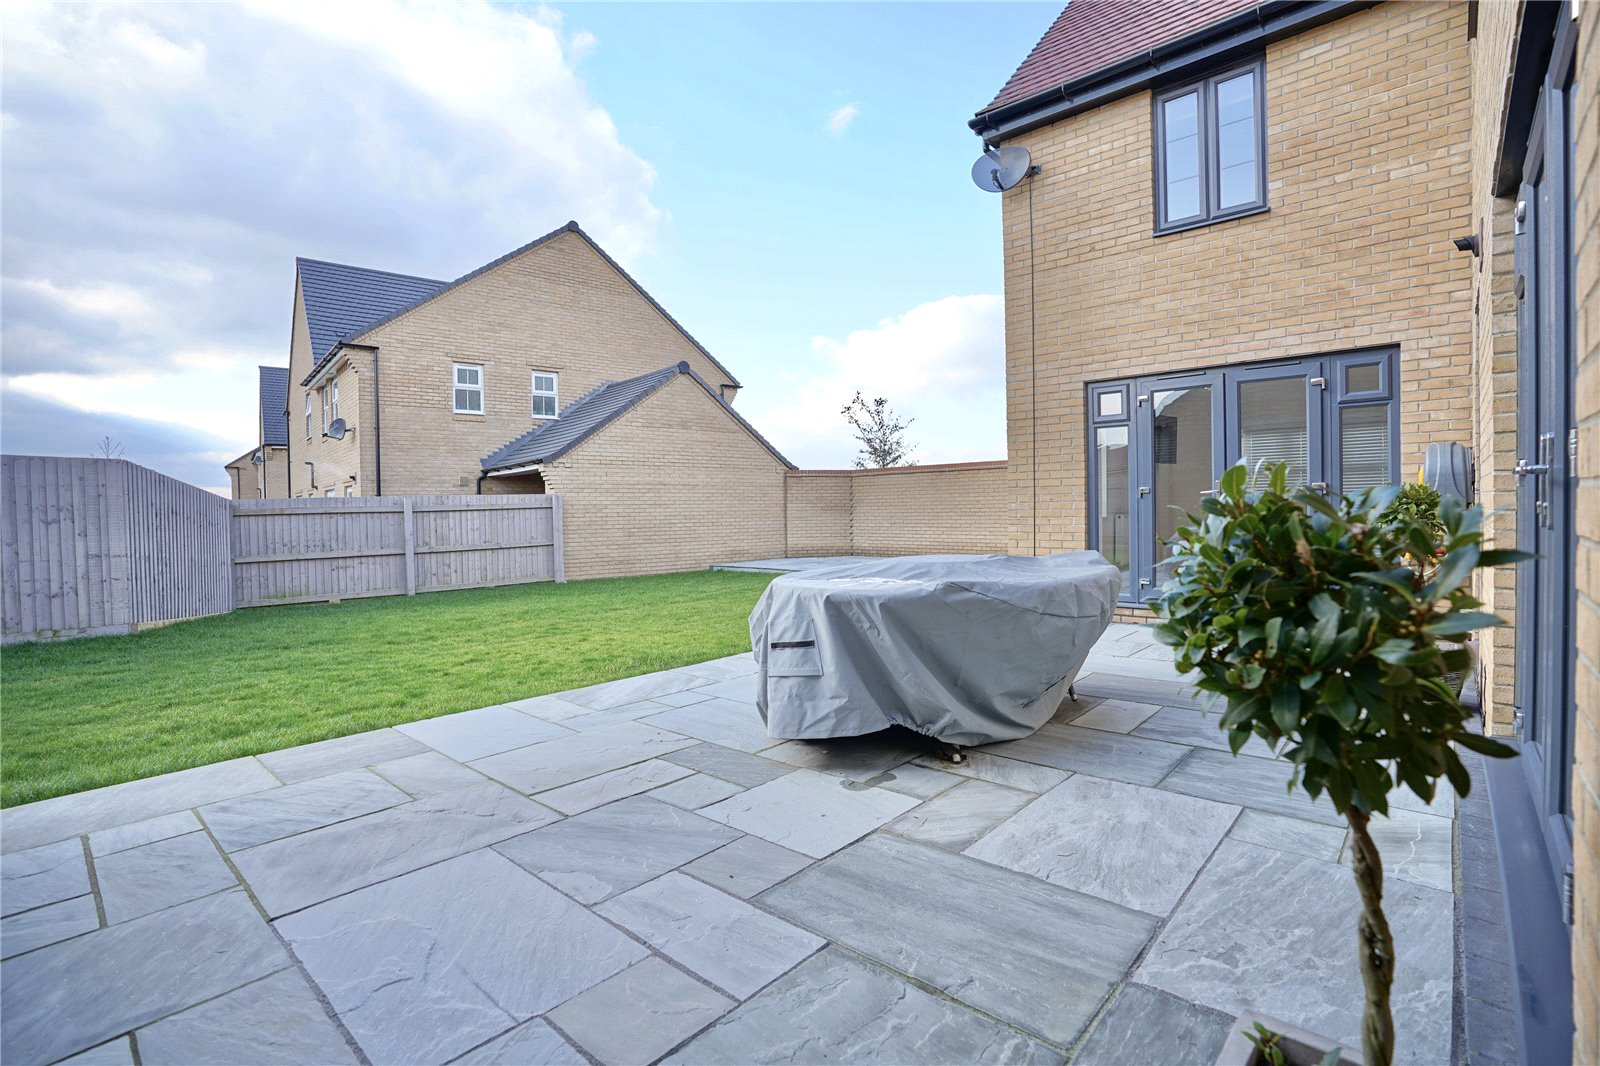 5 bed house for sale in Godmanchester, PE29 2NG 20